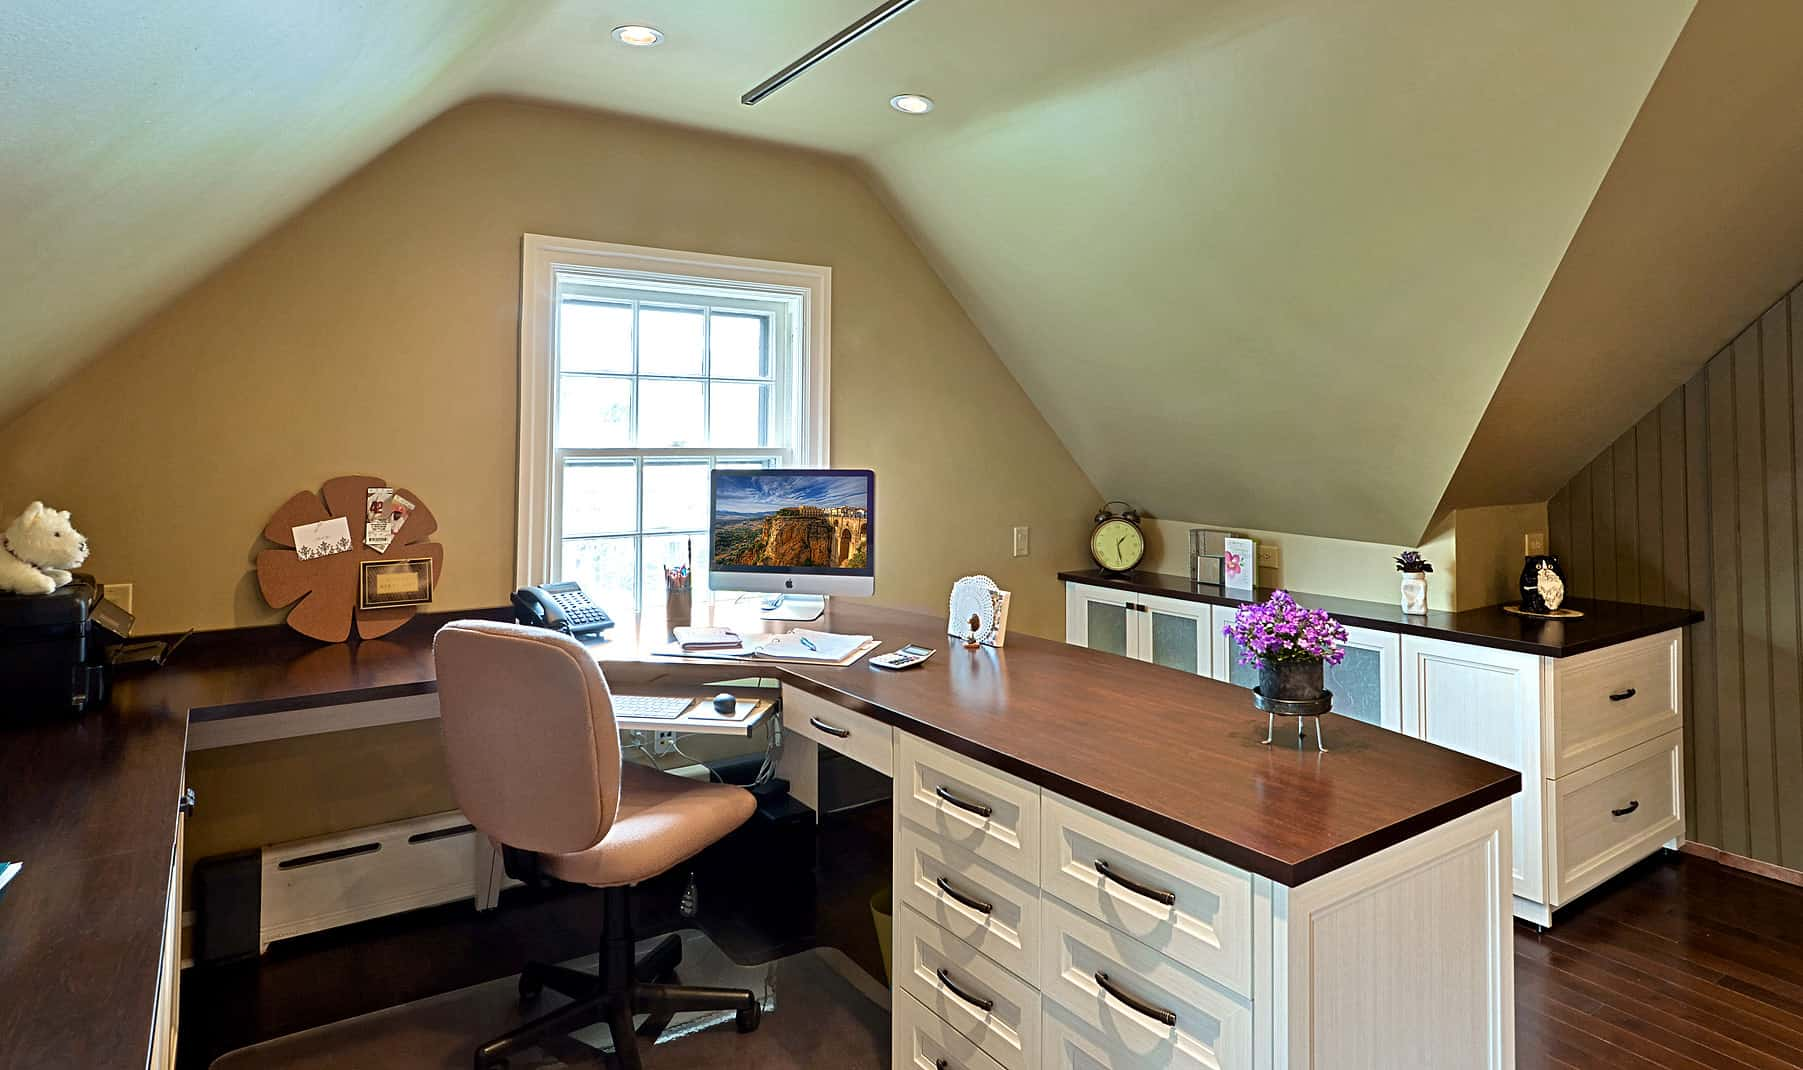 If you have an attic, here's a great idea for how to convert it into a small home office. Just watch your head.